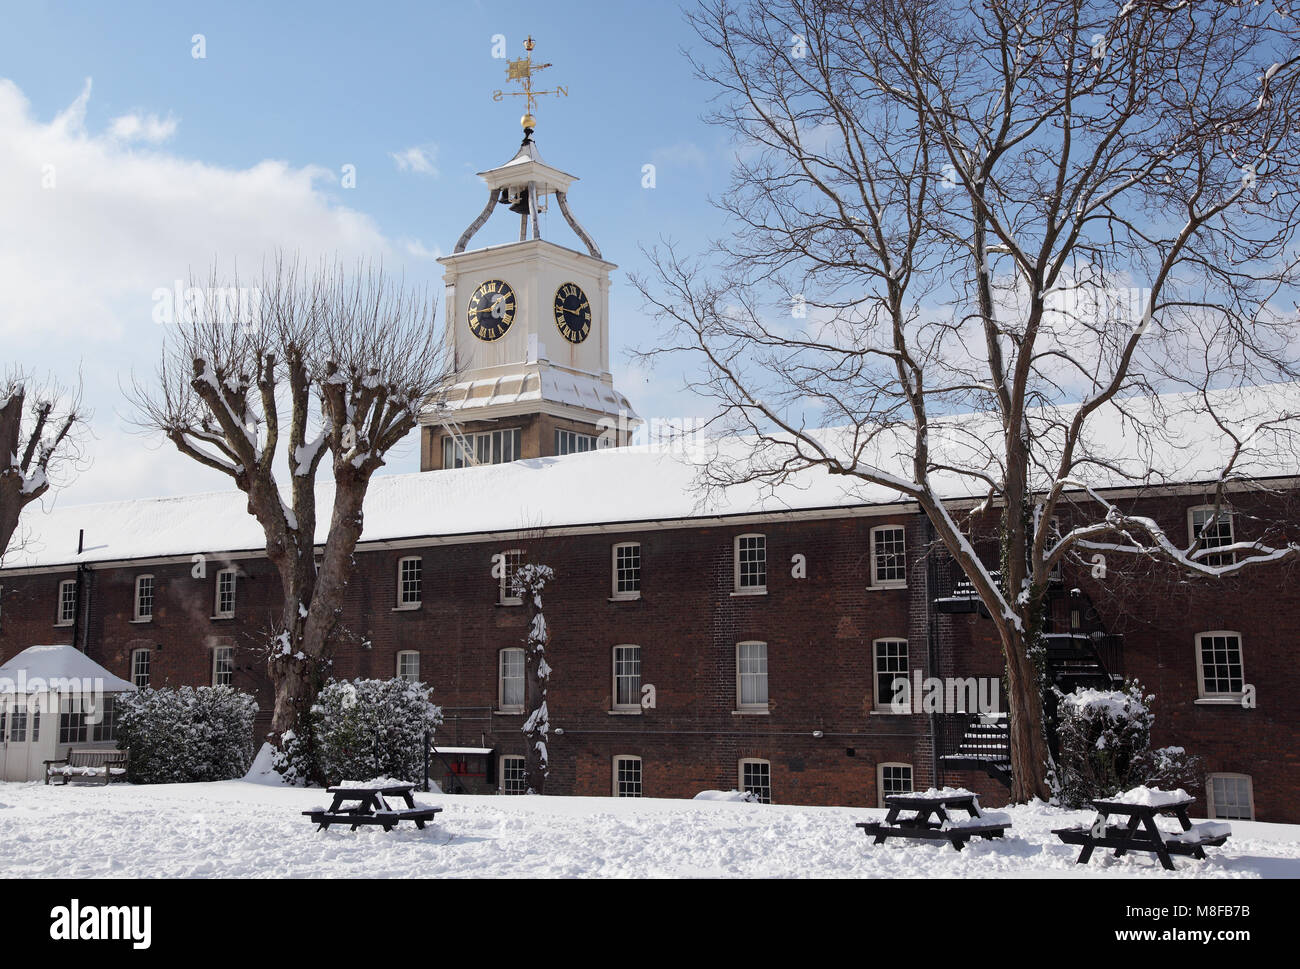 Clocktower Building of the Old Naval Storehouse at Chatham Historic Dockyard, Chatham, Kent, UK. 1723 and re-clad - Stock Image